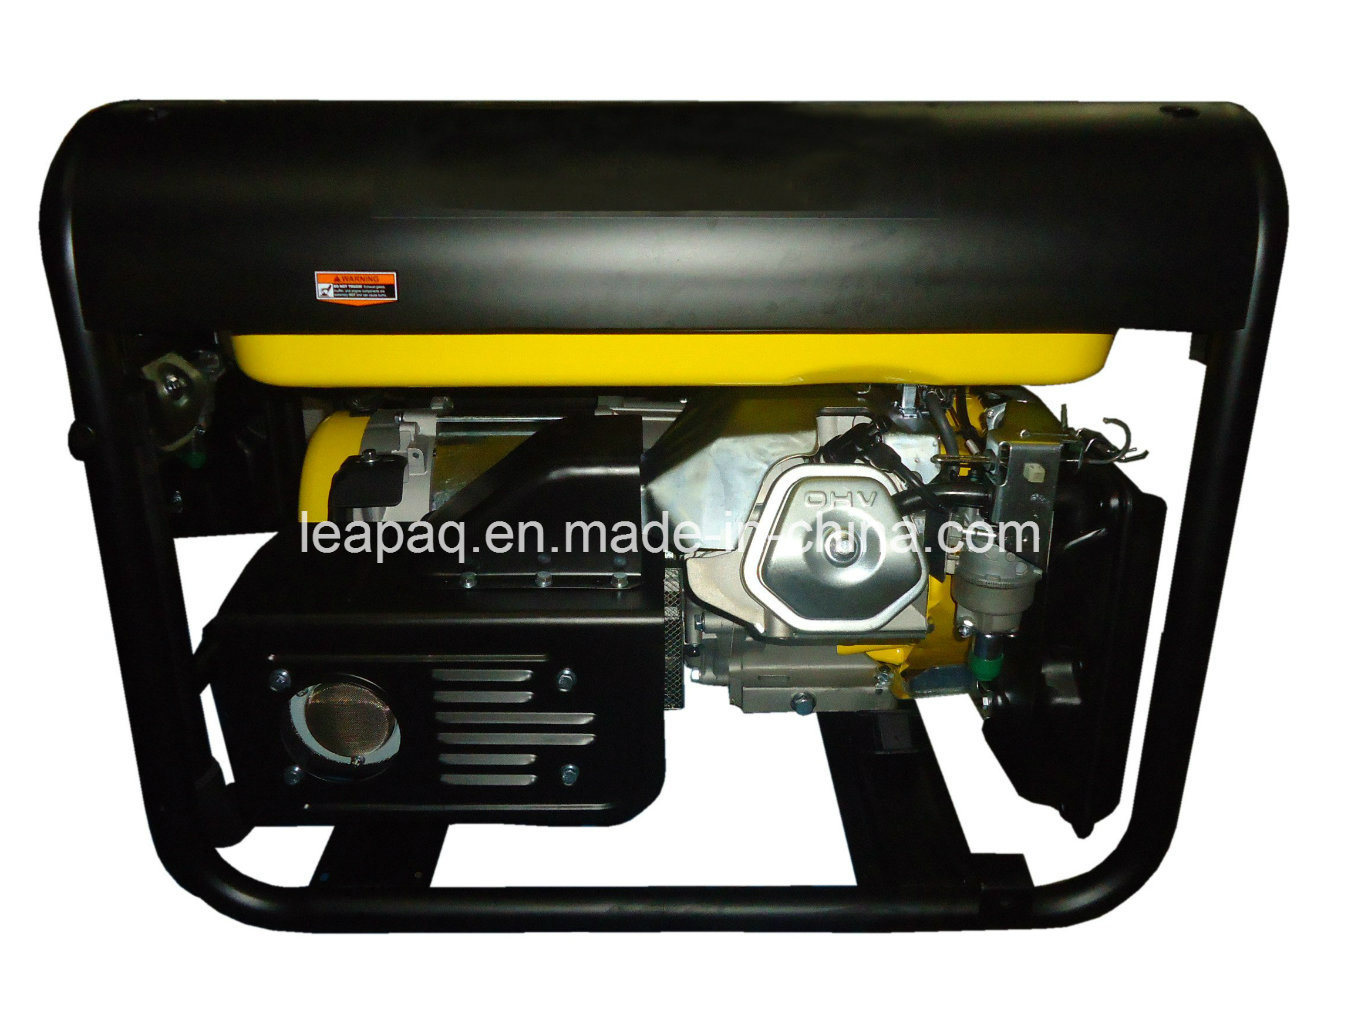 5.0kw 13.0HP Wheels & Handle P-Type Portable Gasoline Generator